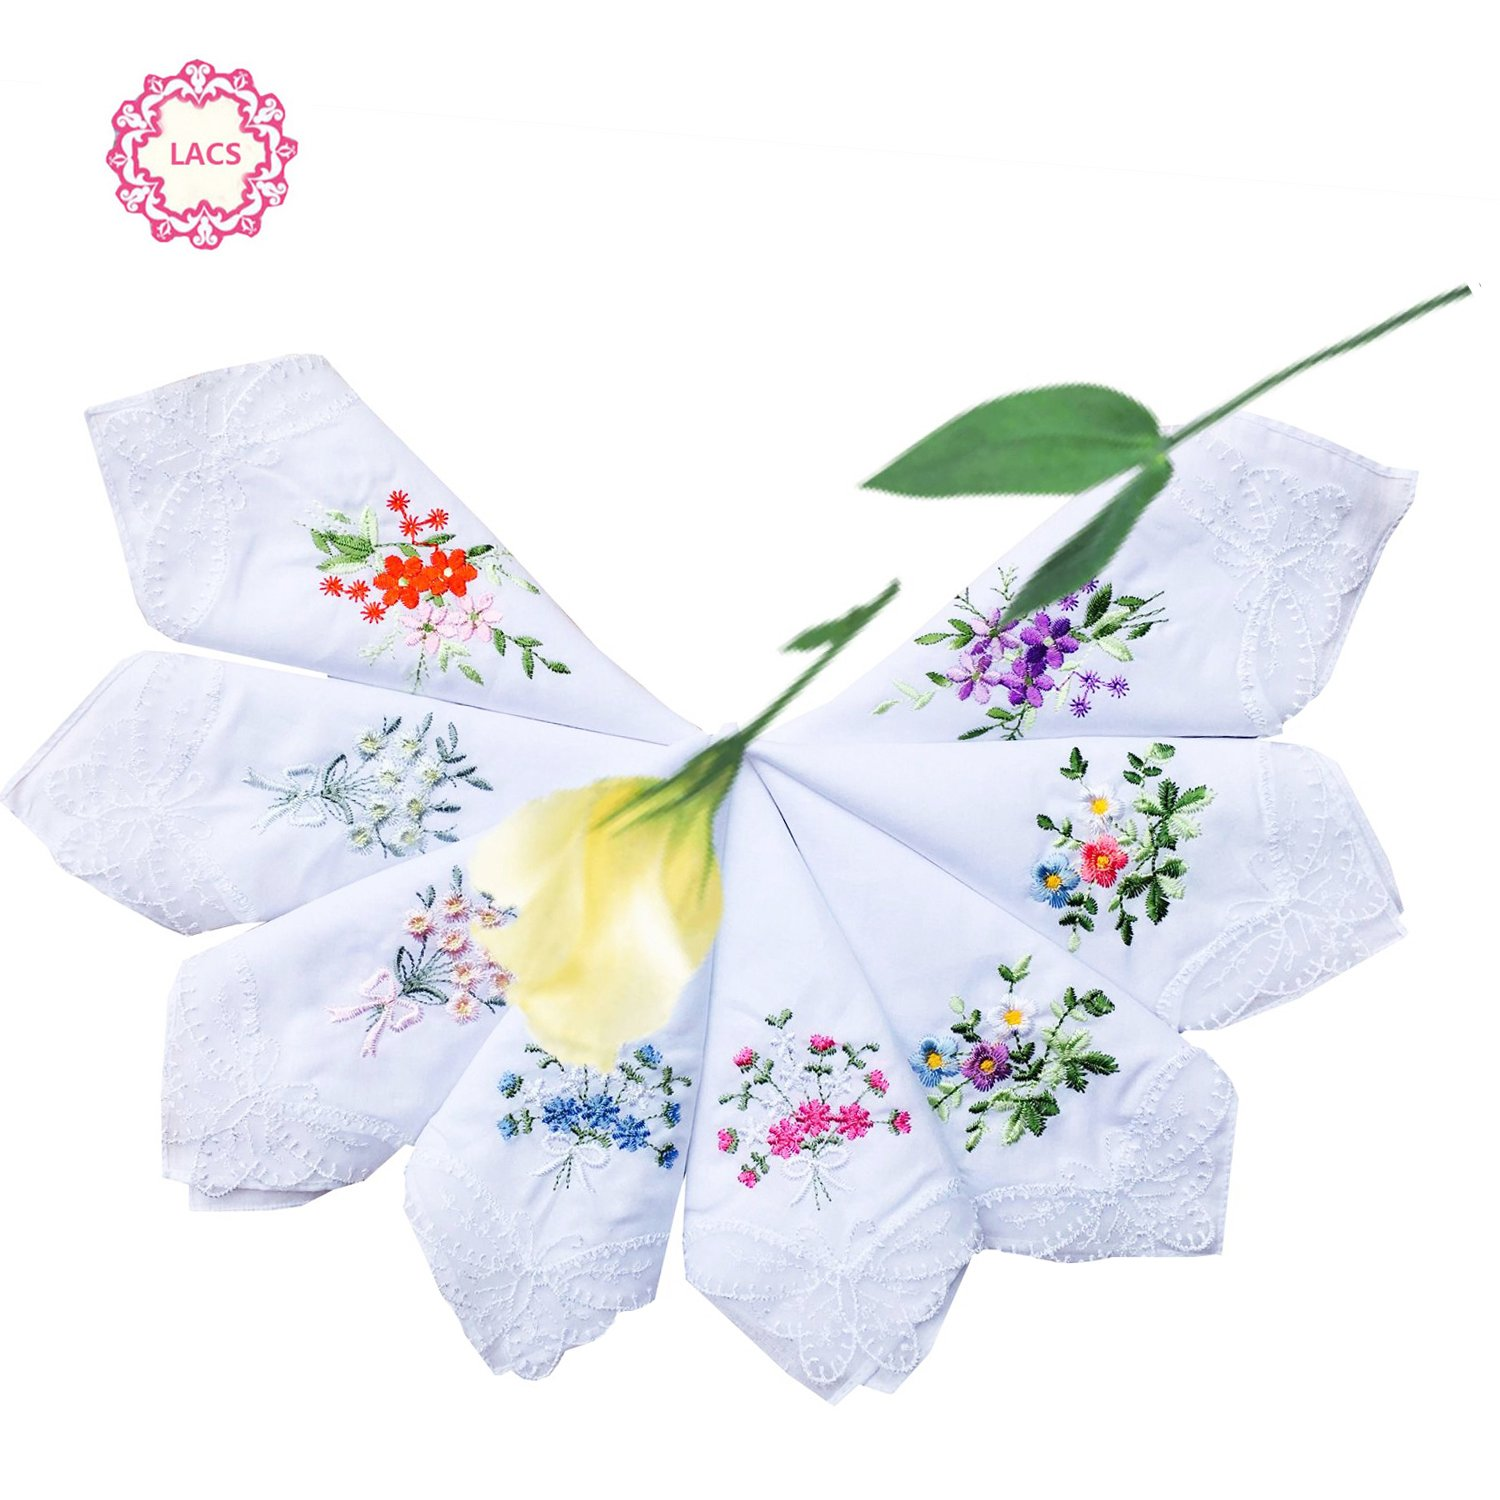 LACS Womens Embroidered Floral Cotton Lace Handkerchiefs White Hankies Pack